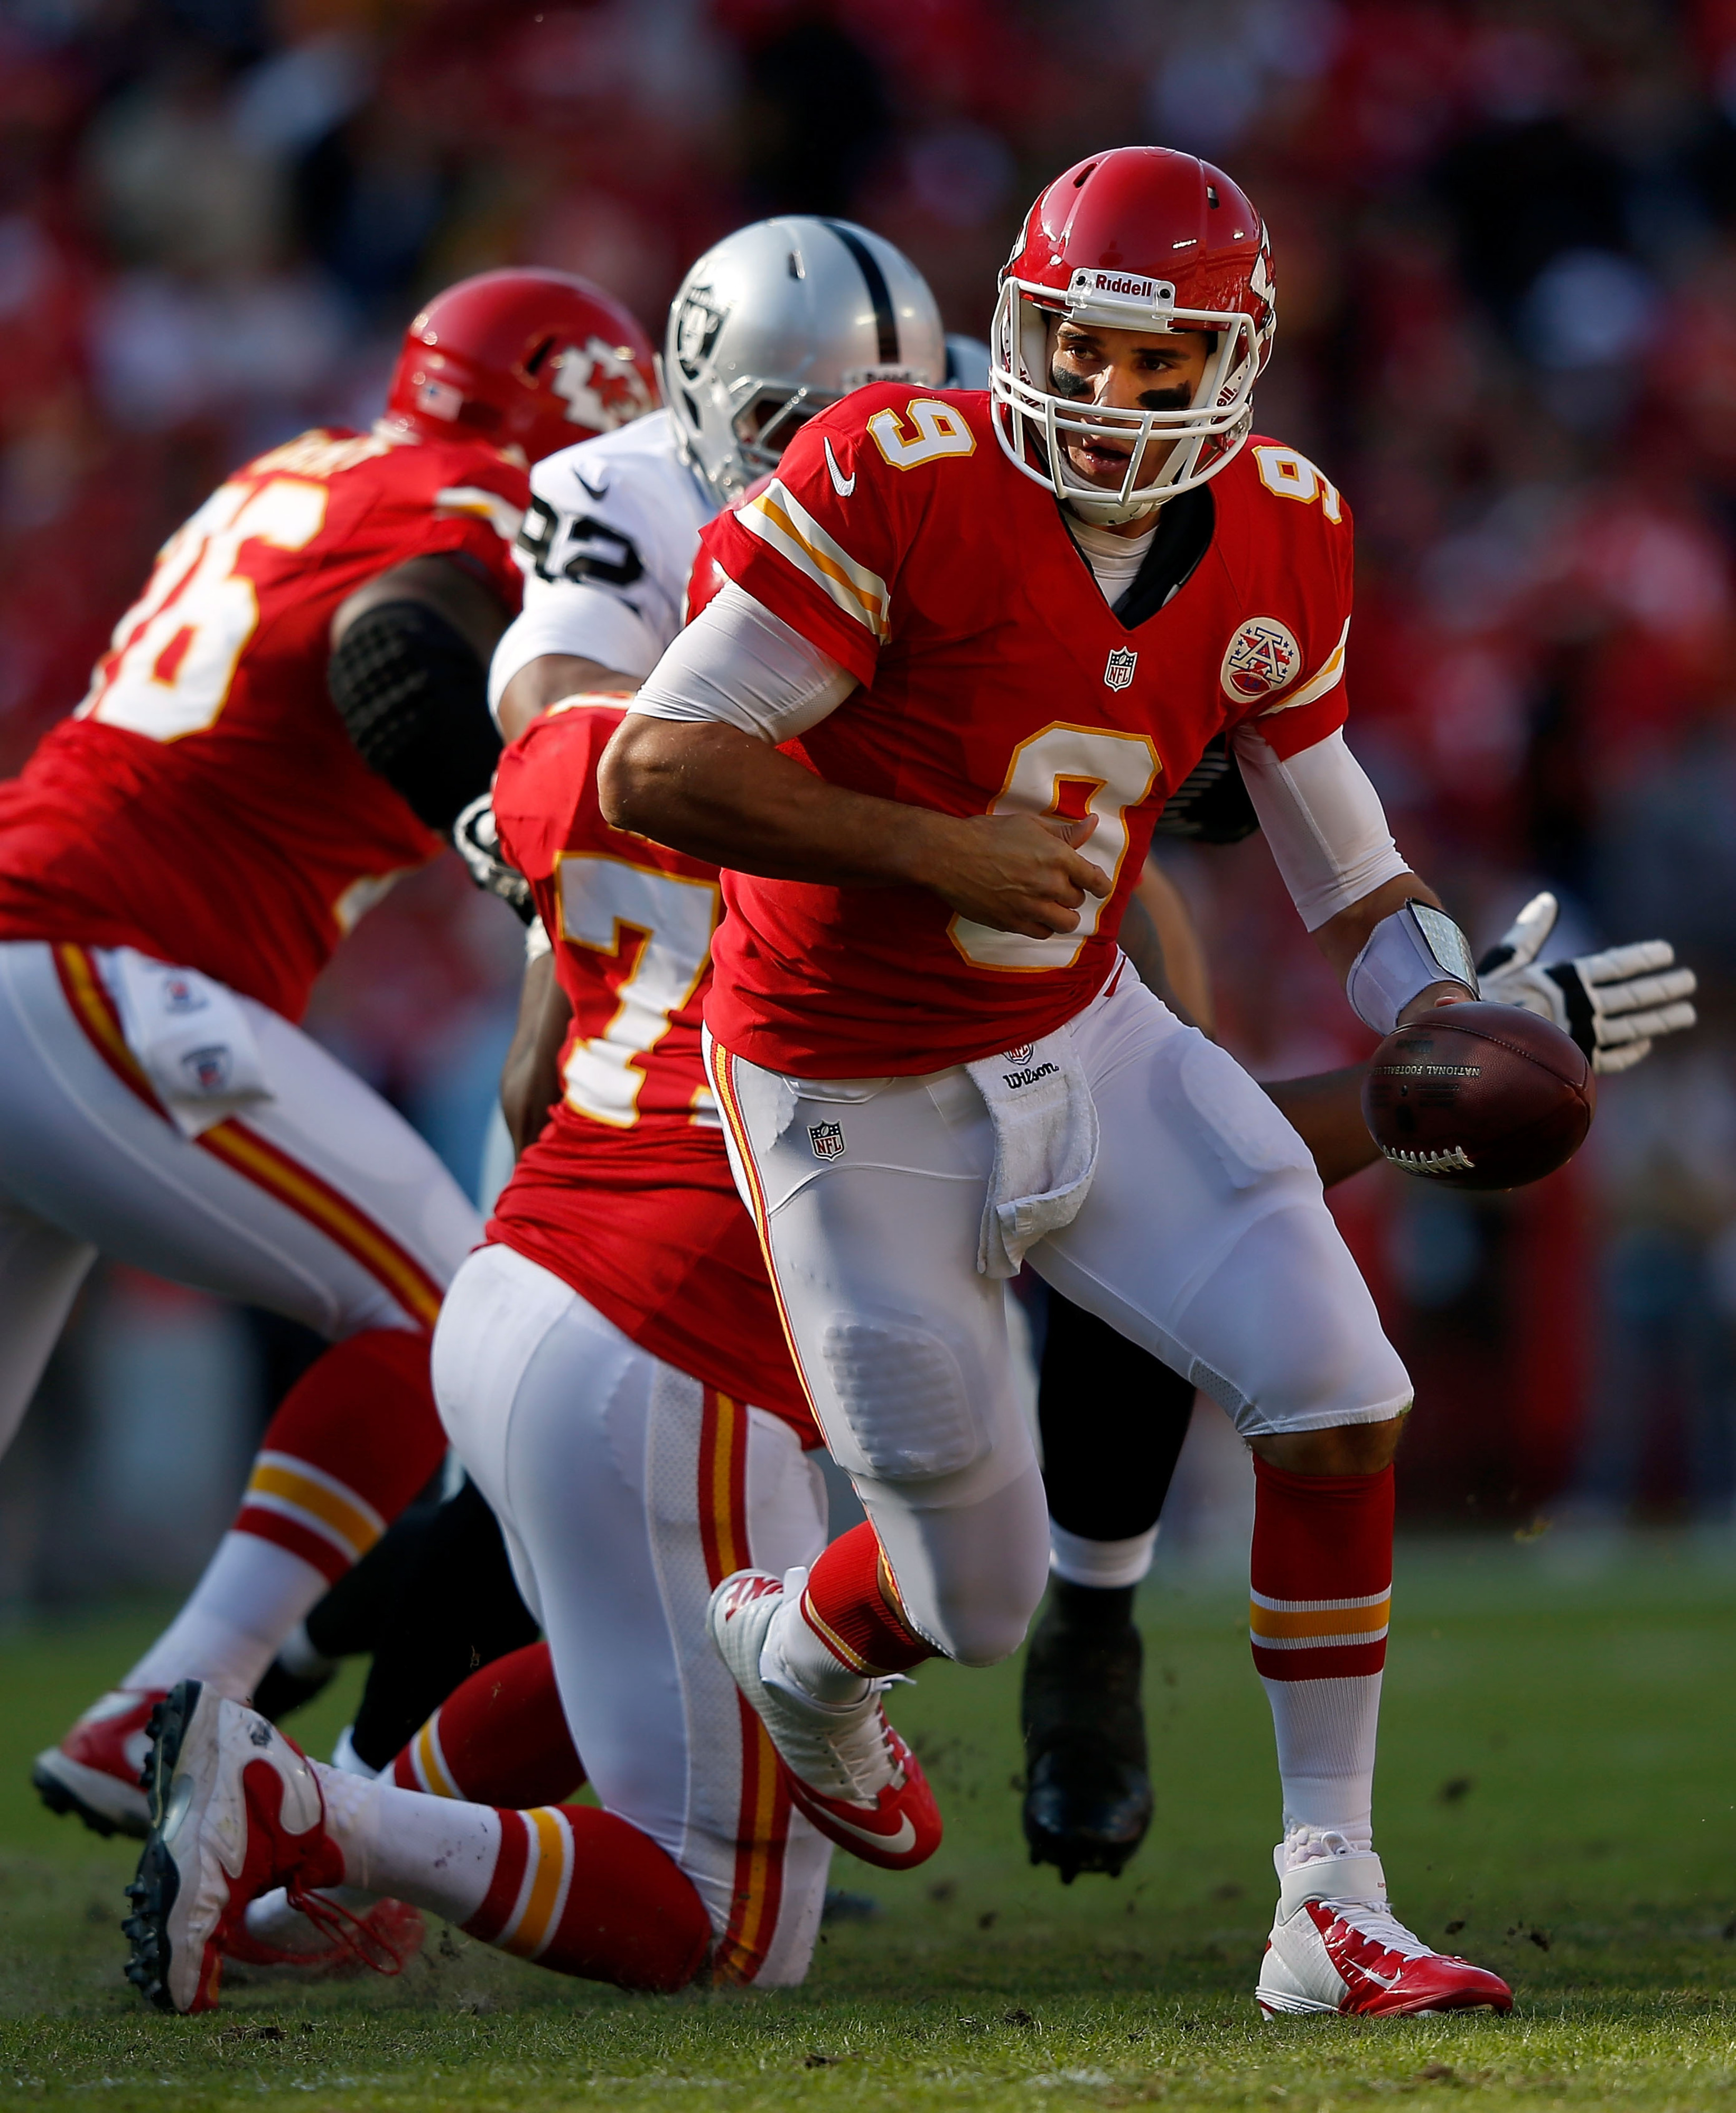 San Diego Chargers Chiefs Game: Chiefs Vs. Chargers: Everything You Need To Know